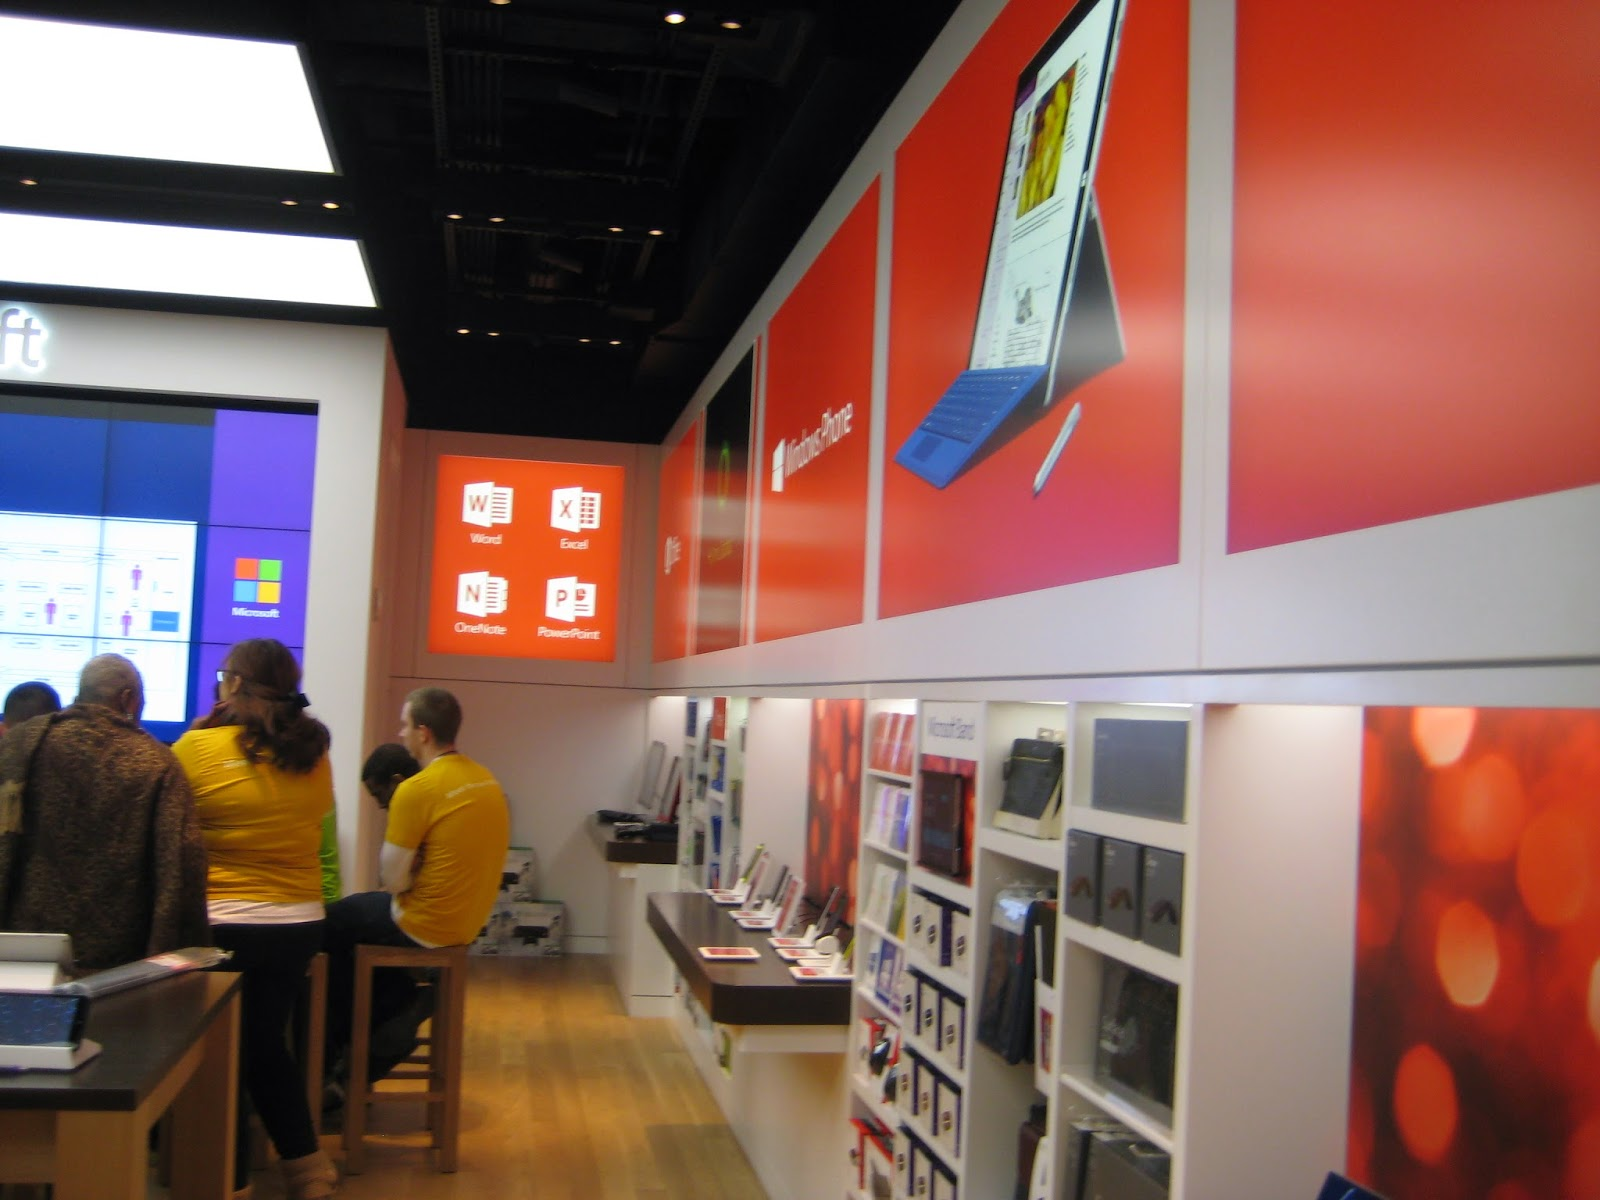 Building 92 microsoft store -  Amazing Partner And That The Parent Company S Long Term Reinvestment In The Retail Center Was Just One Of Many Factors That Led Microsoft To Choose